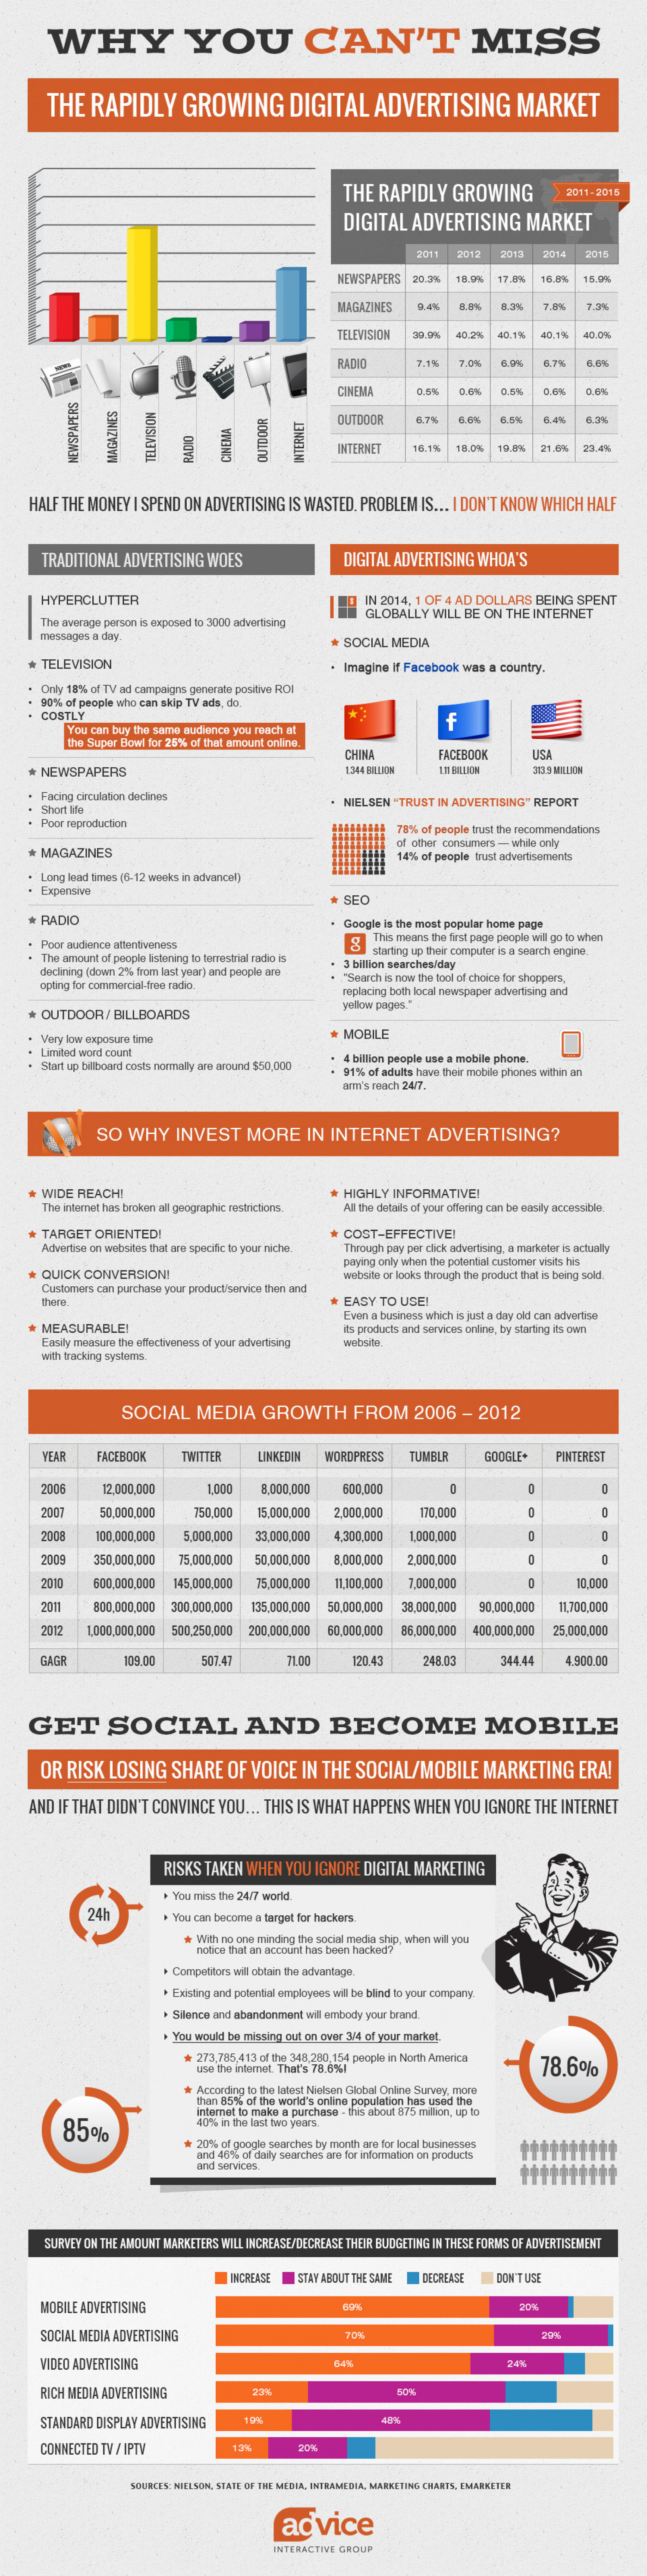 Why You Can't Miss The Rapidly Growing Digital Advertising Market Infographic